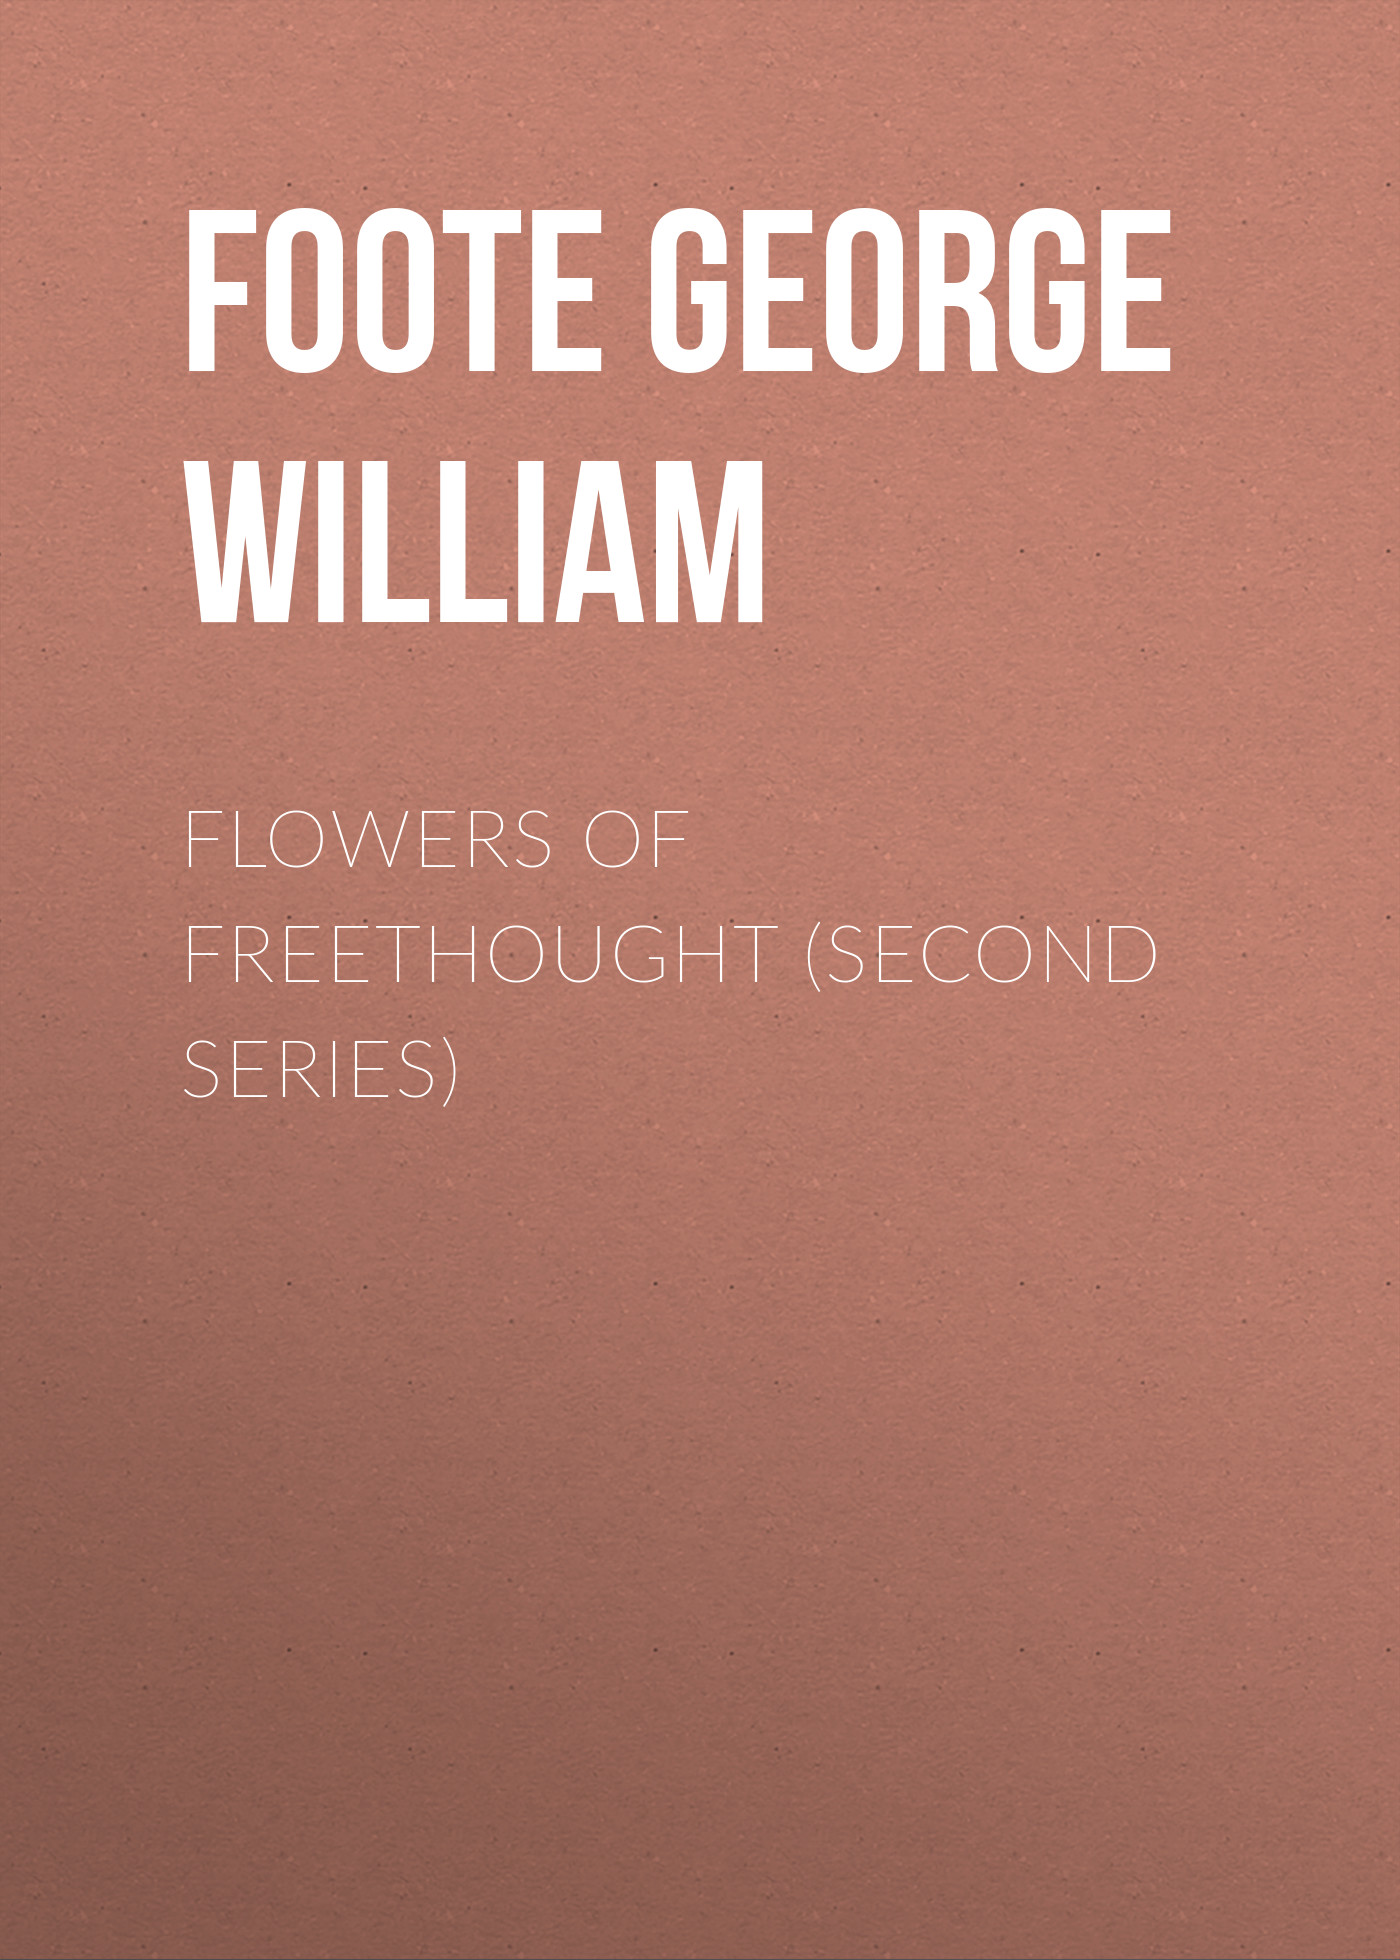 Foote George William Flowers of Freethought (Second Series) william h ukers all about coffee second edition